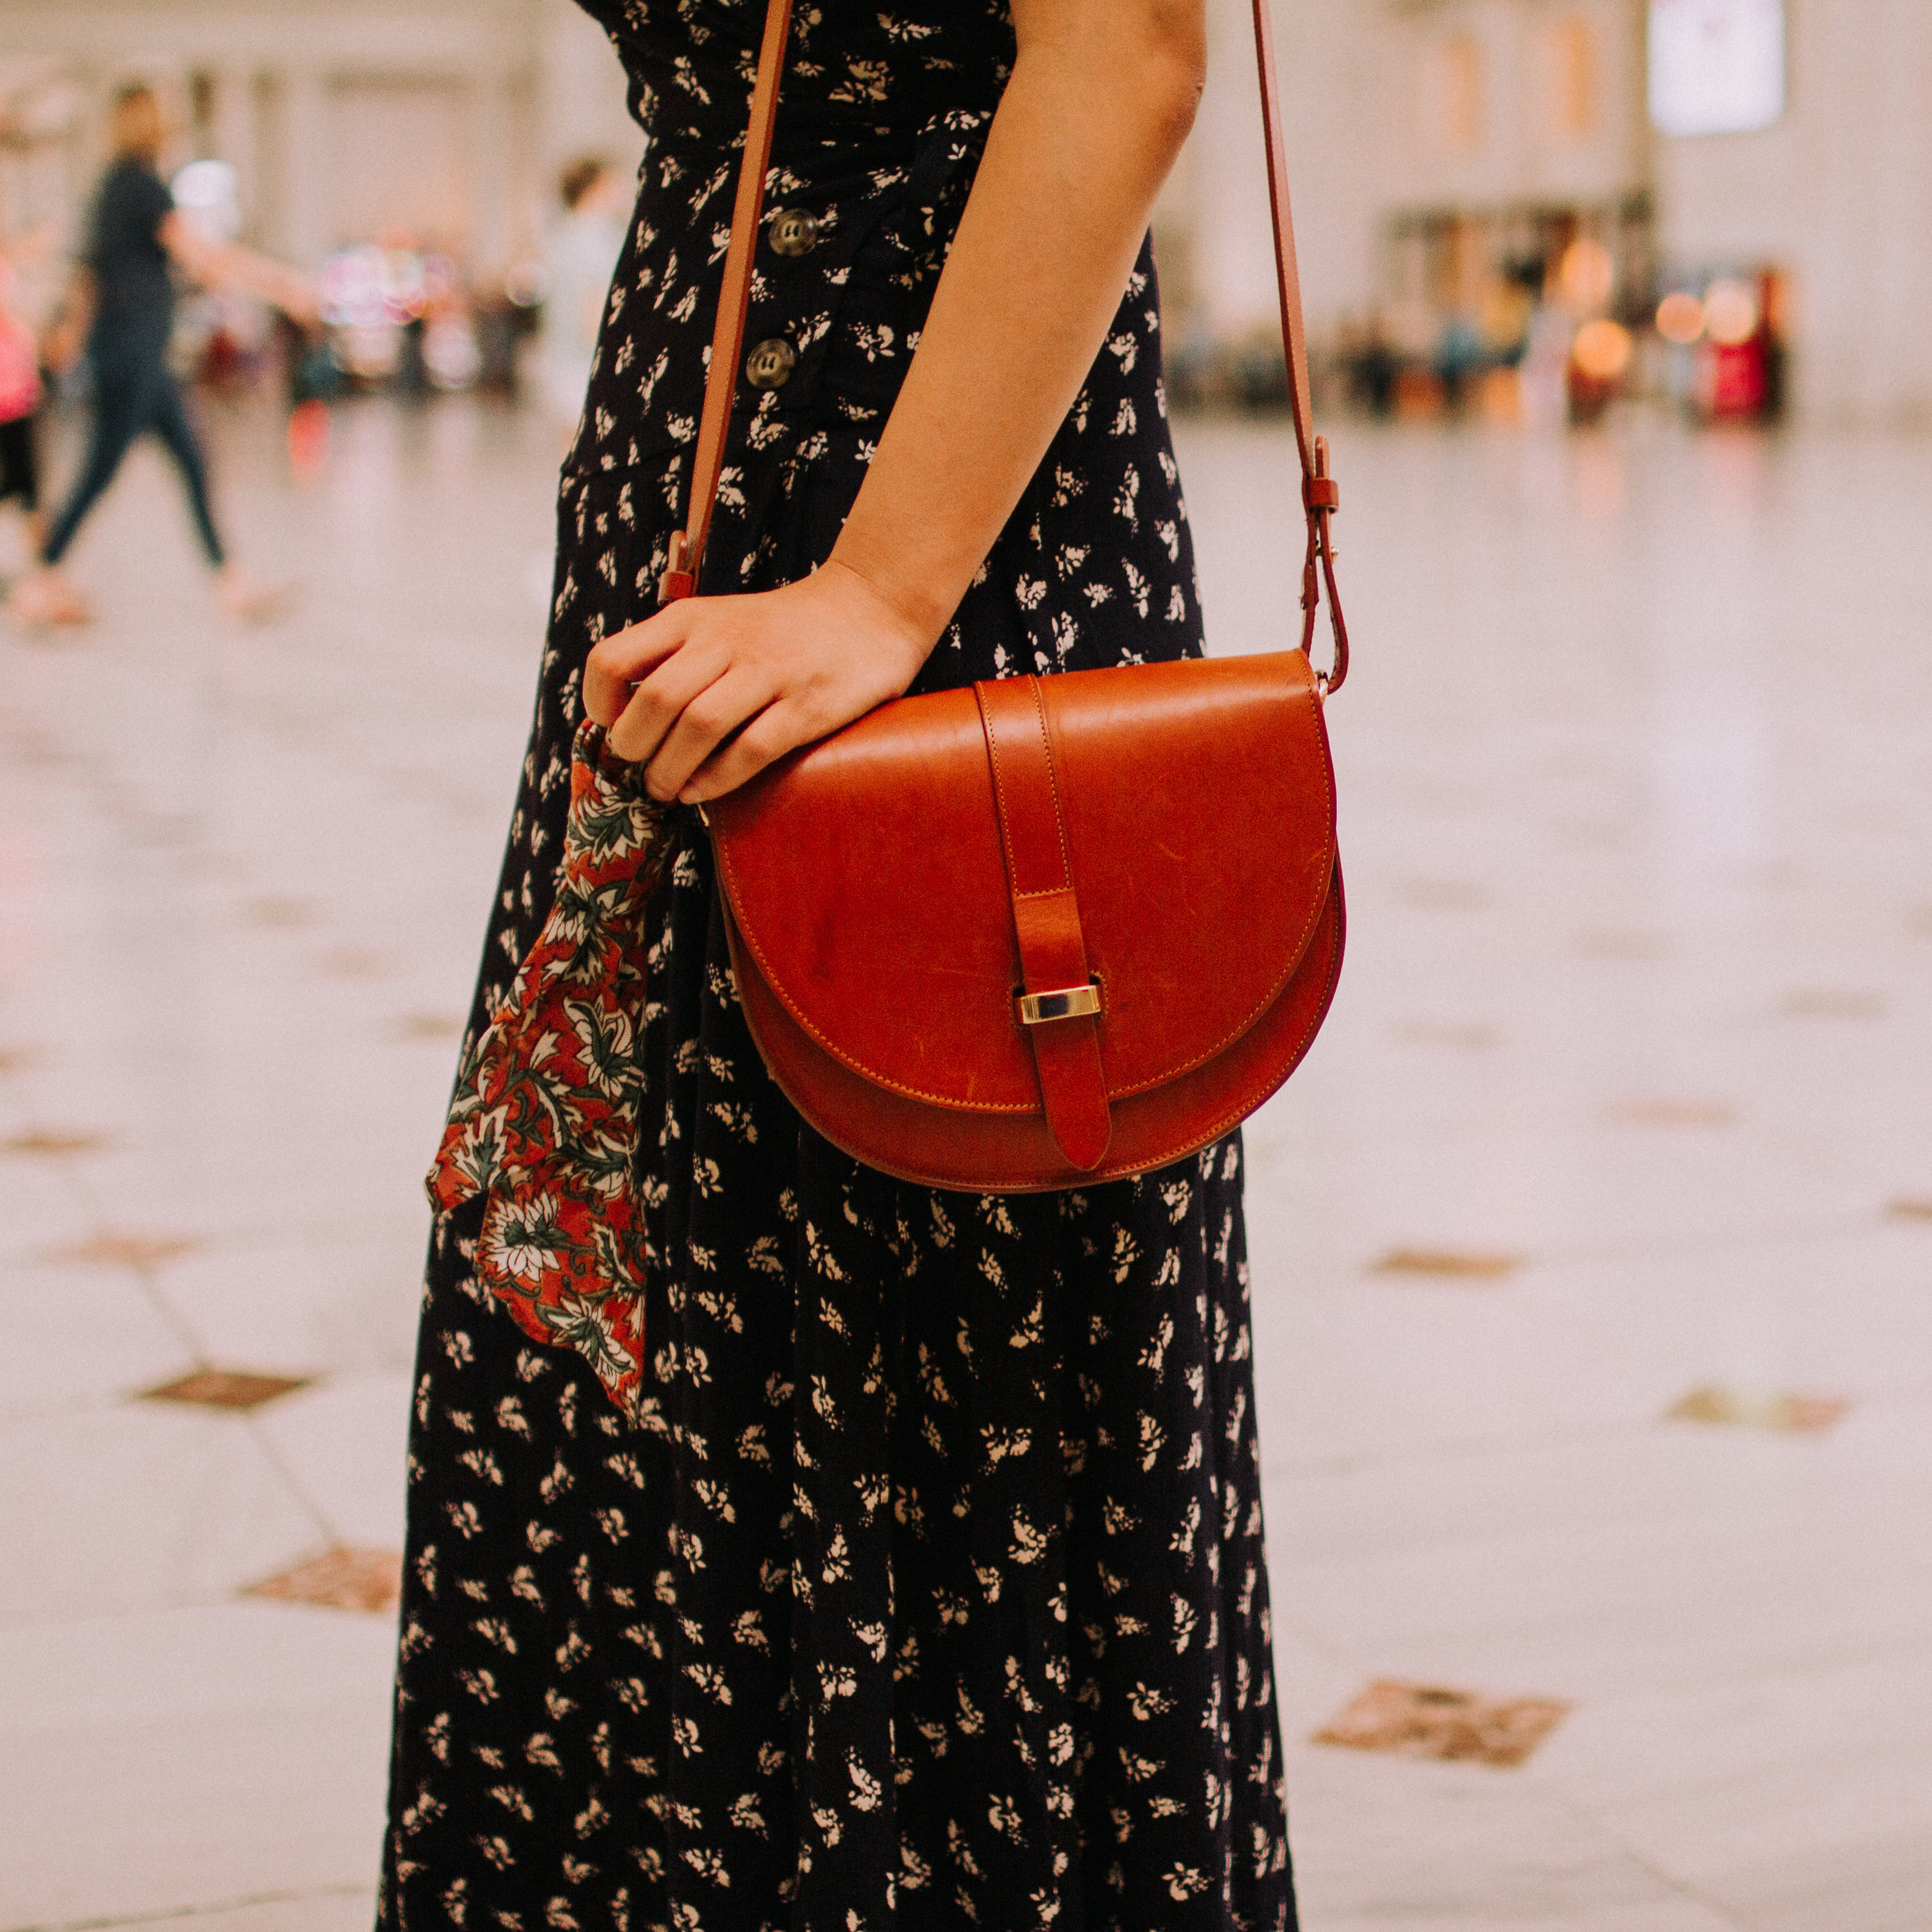 Wrap Maxi Dress and Leather Handbag